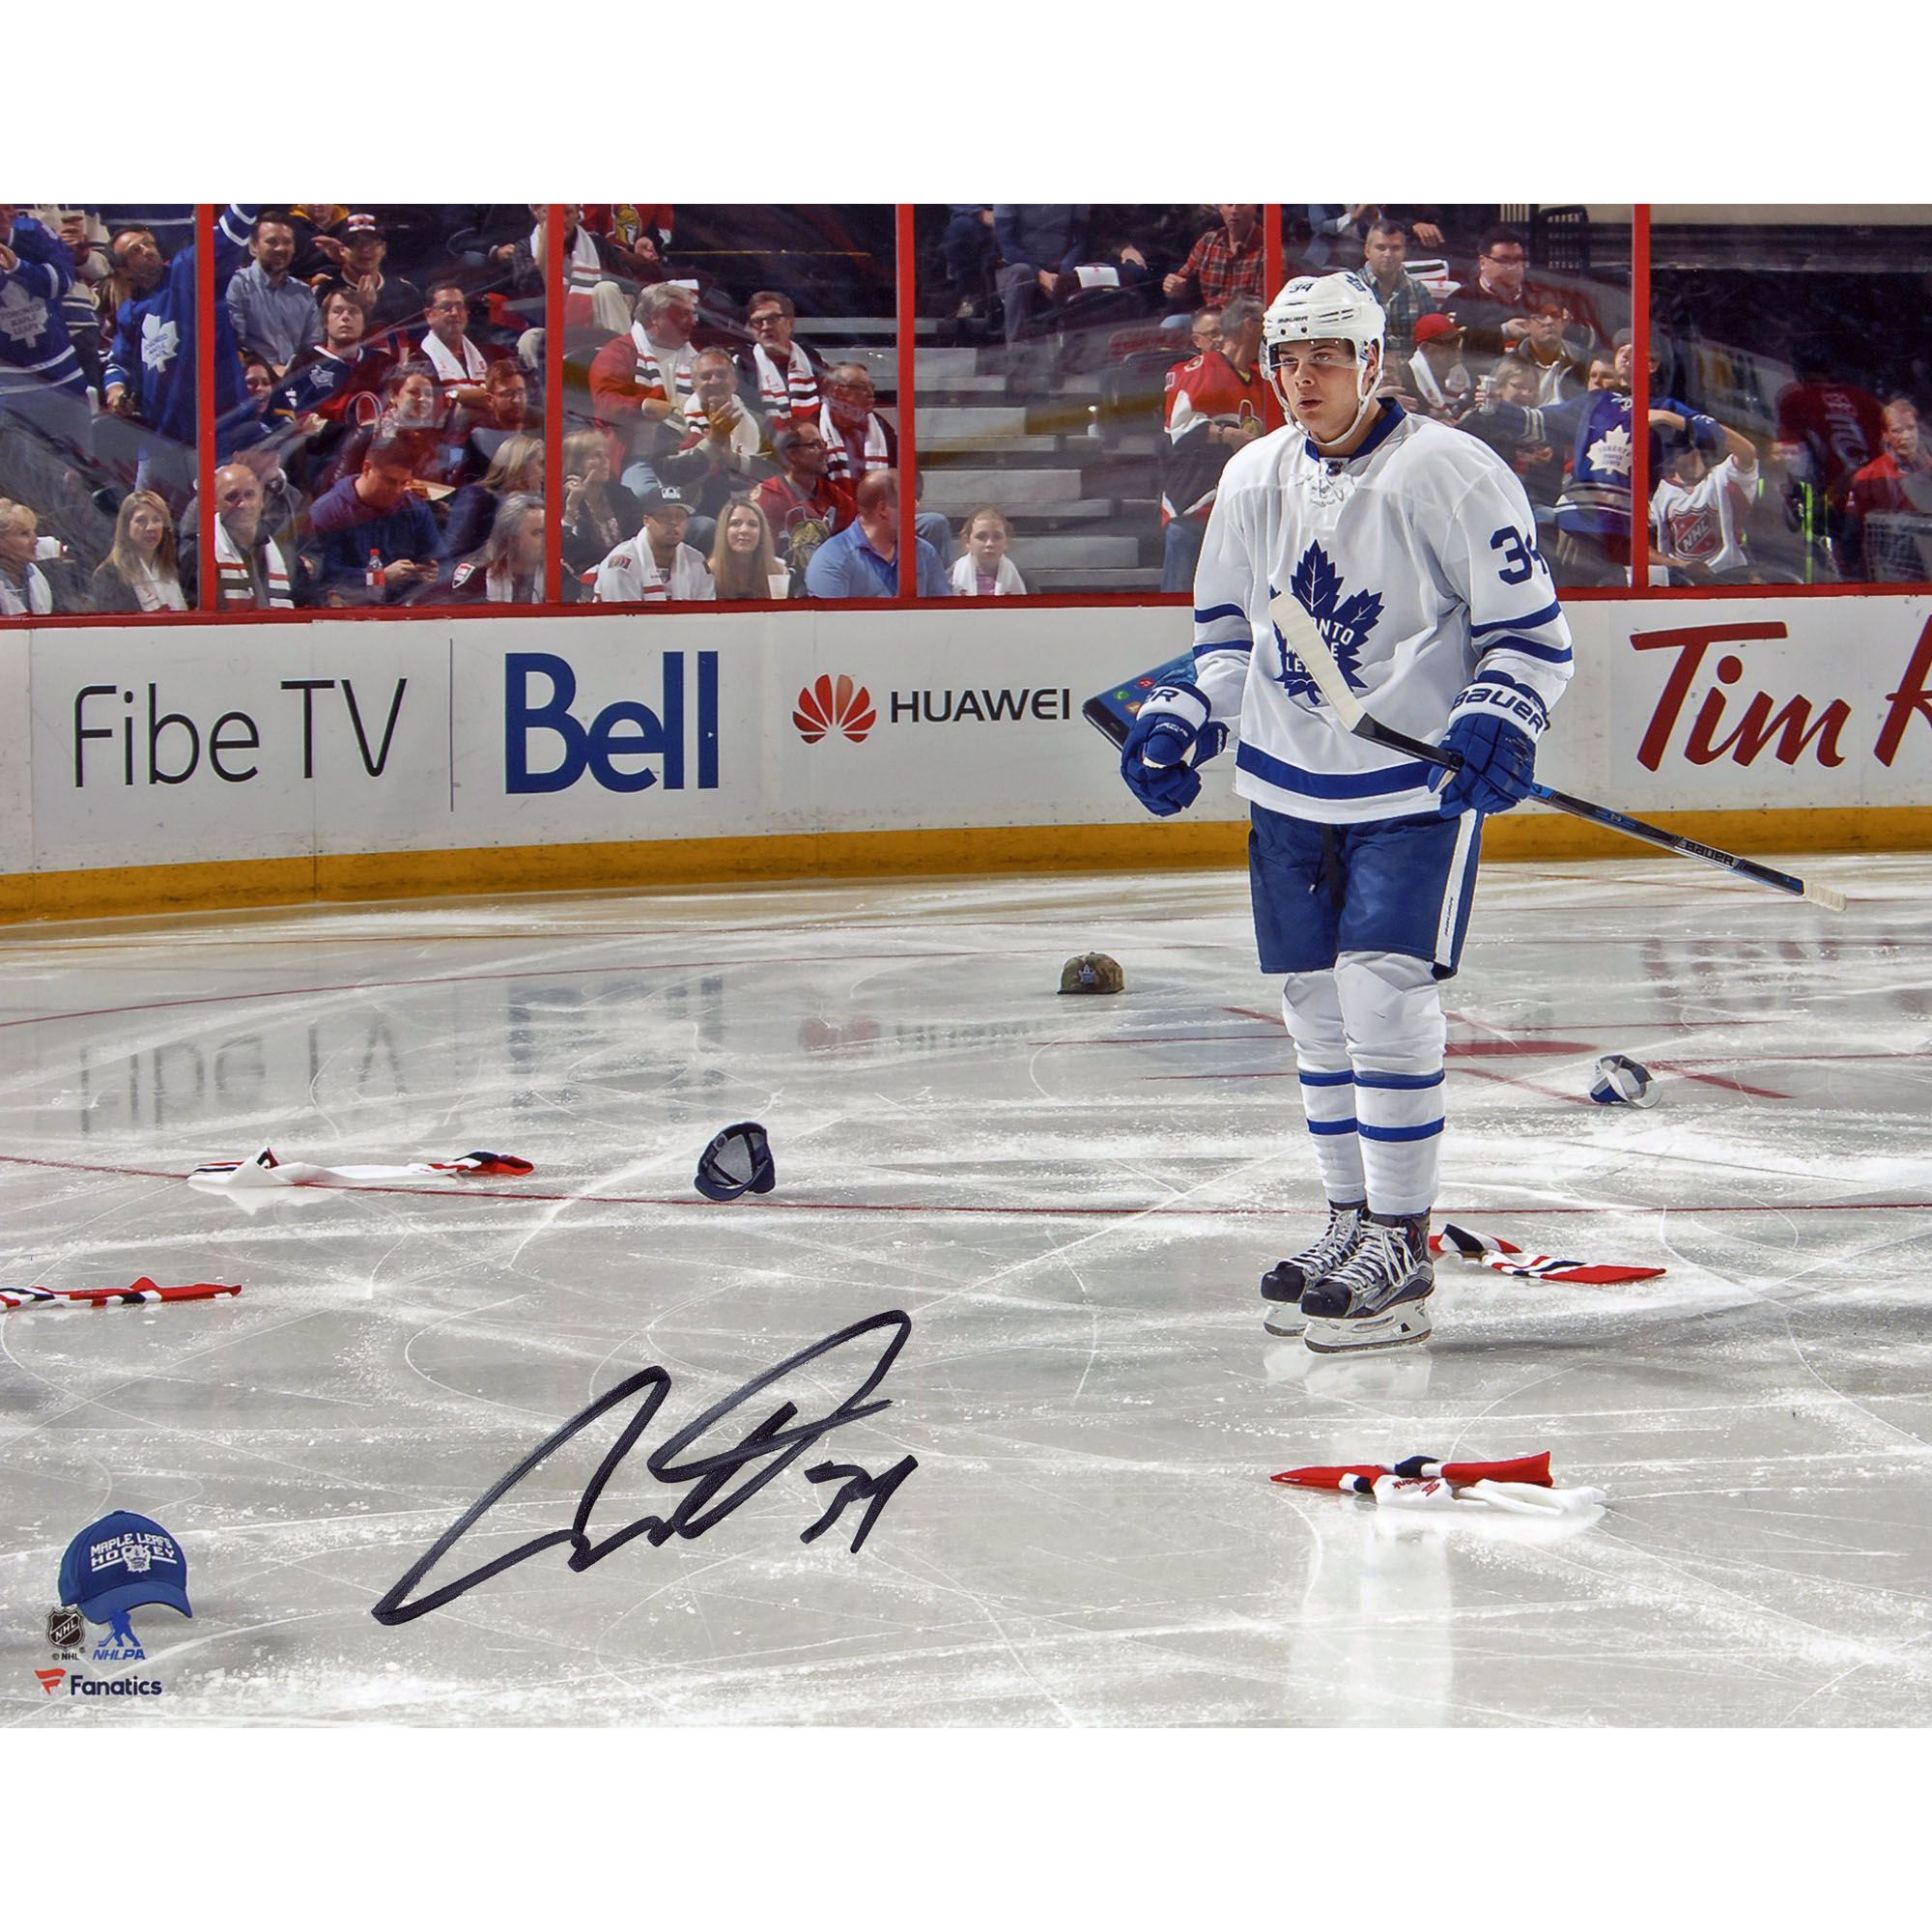 ce725c79 Auston Matthews Toronto Maple Leafs Fanatics Authentic Autographed 8